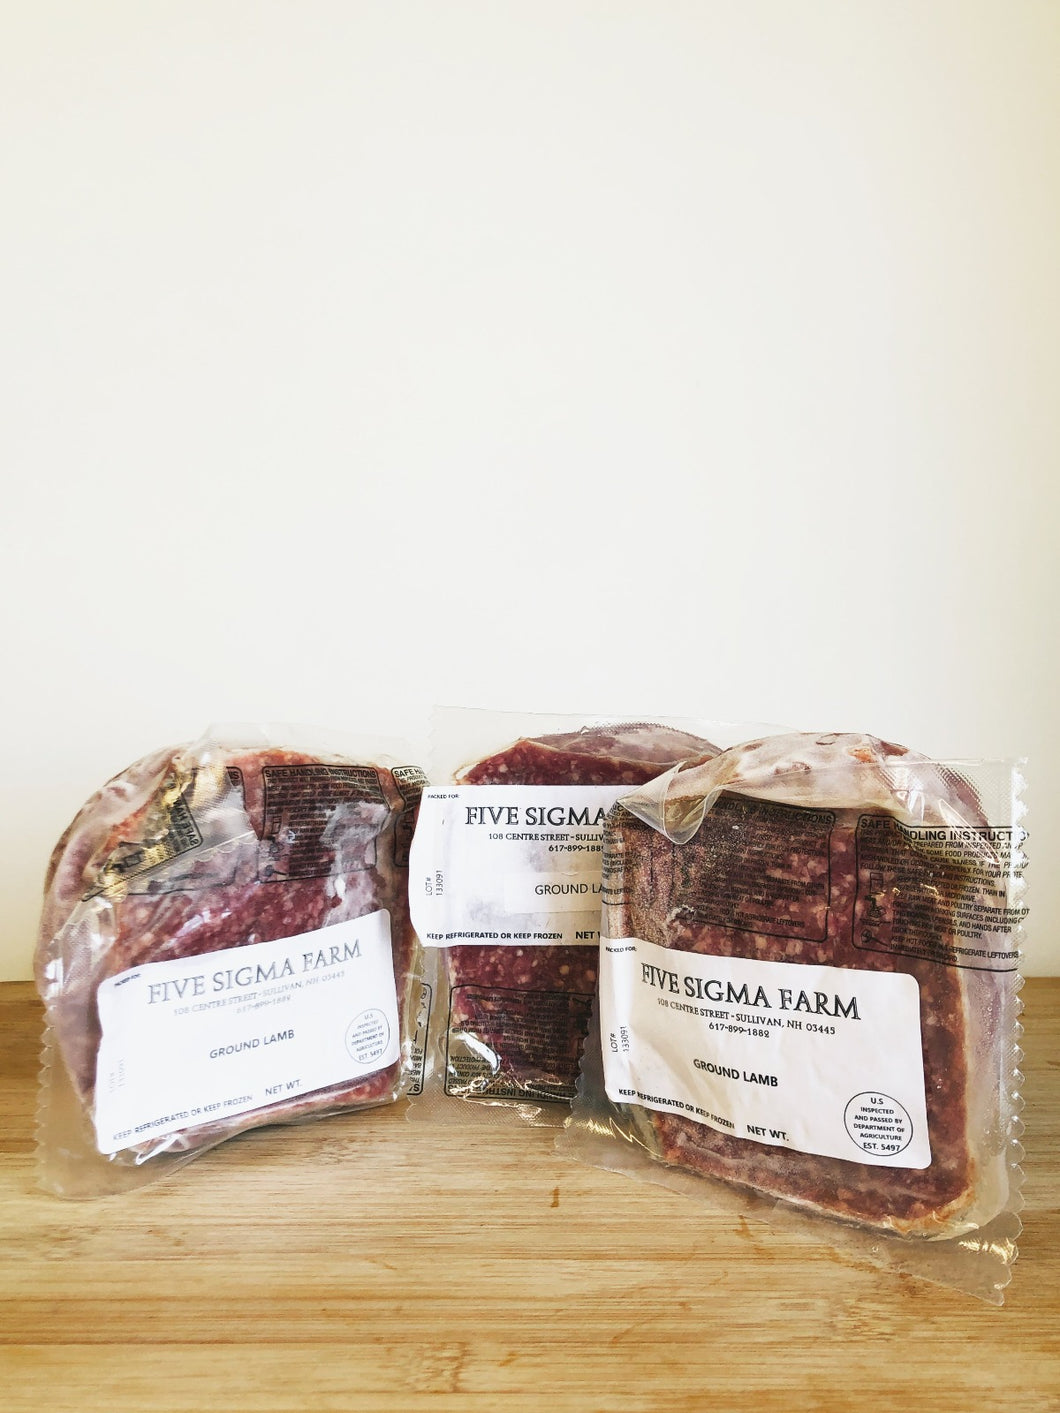 Lamb, 100% Grass-fed & Pasture-raised (Five Sigma Farm)